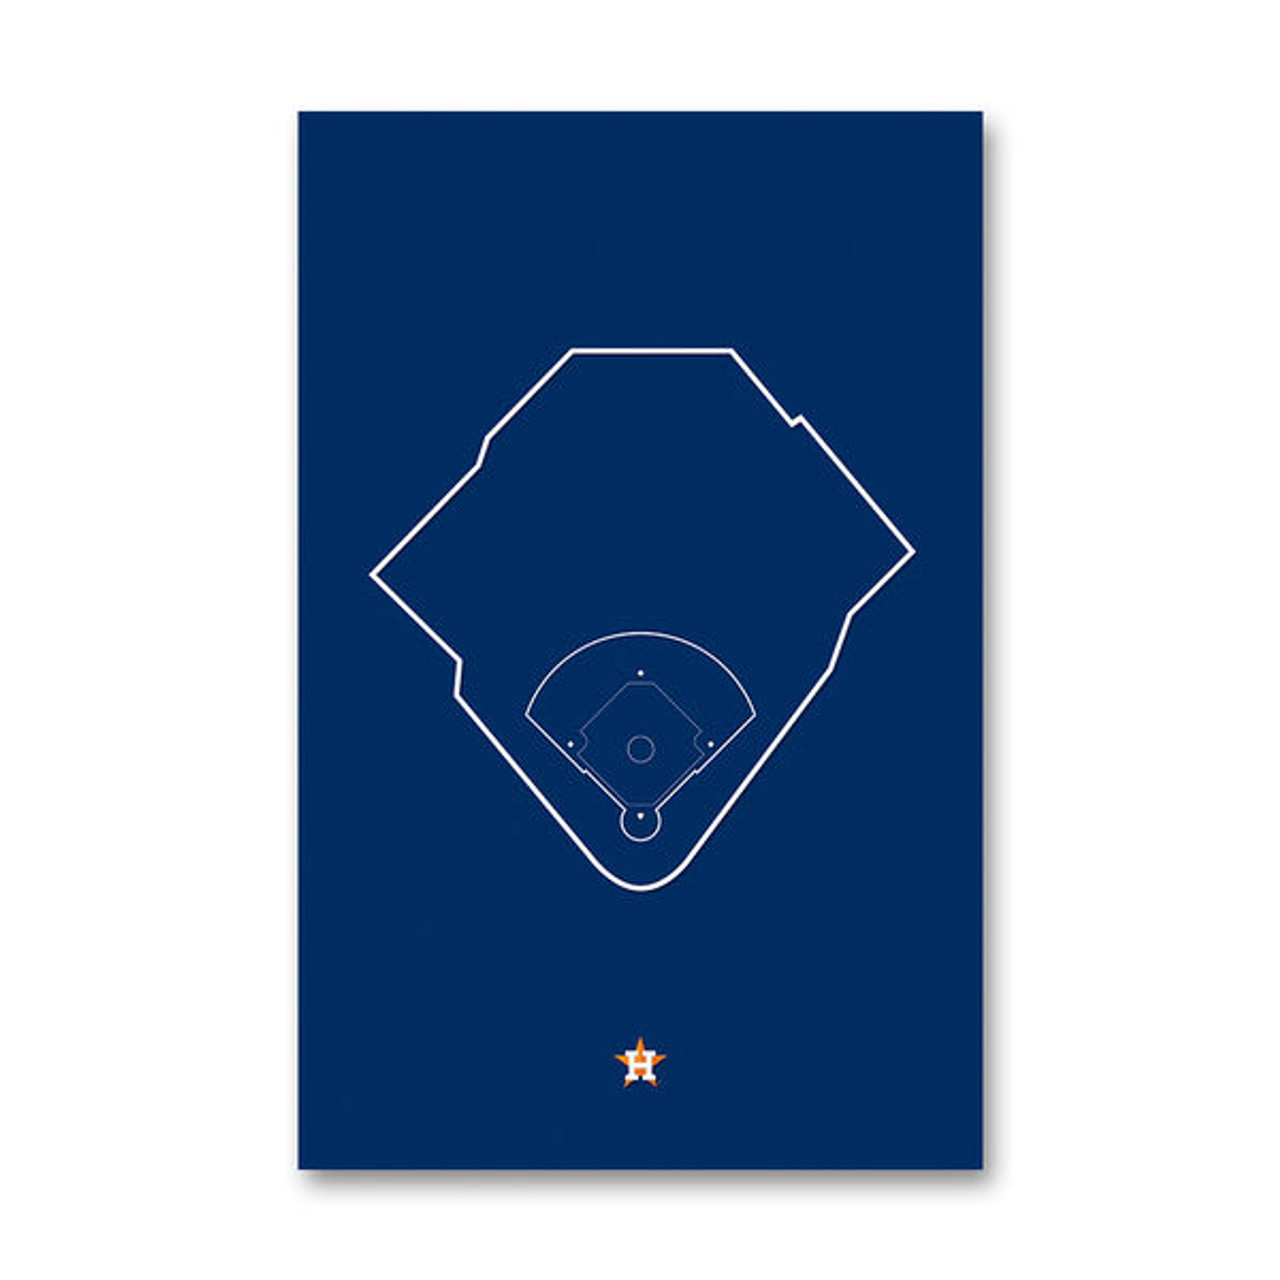 Minute Maid Park Outline - Houston Astros Art Poster